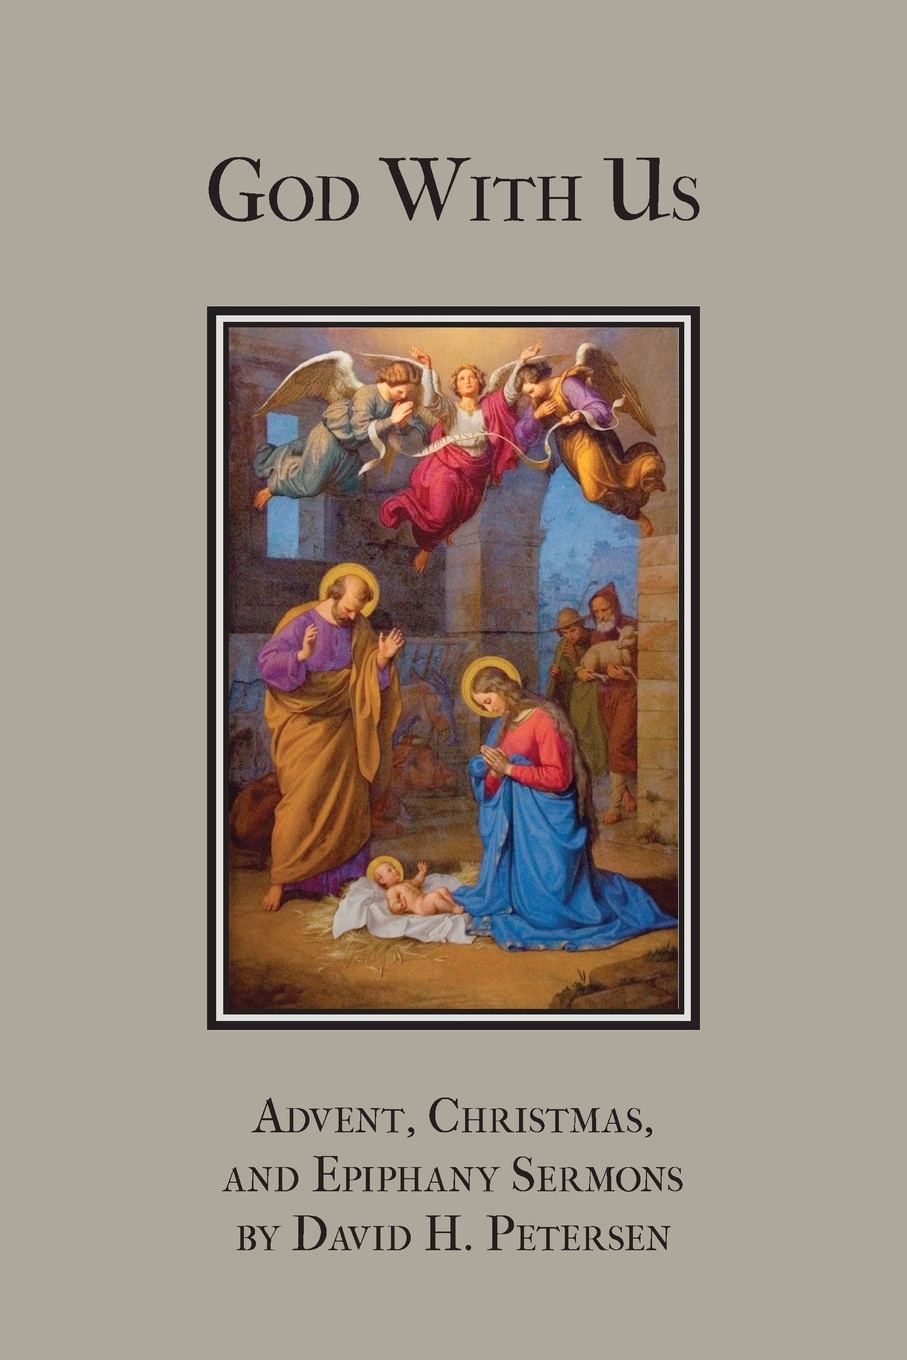 Фото - David H. Petersen God with Us. Advent, Christmas, and Epiphany Sermons joseph h leckie david w forrest memoir tributes sermons and theological lectures